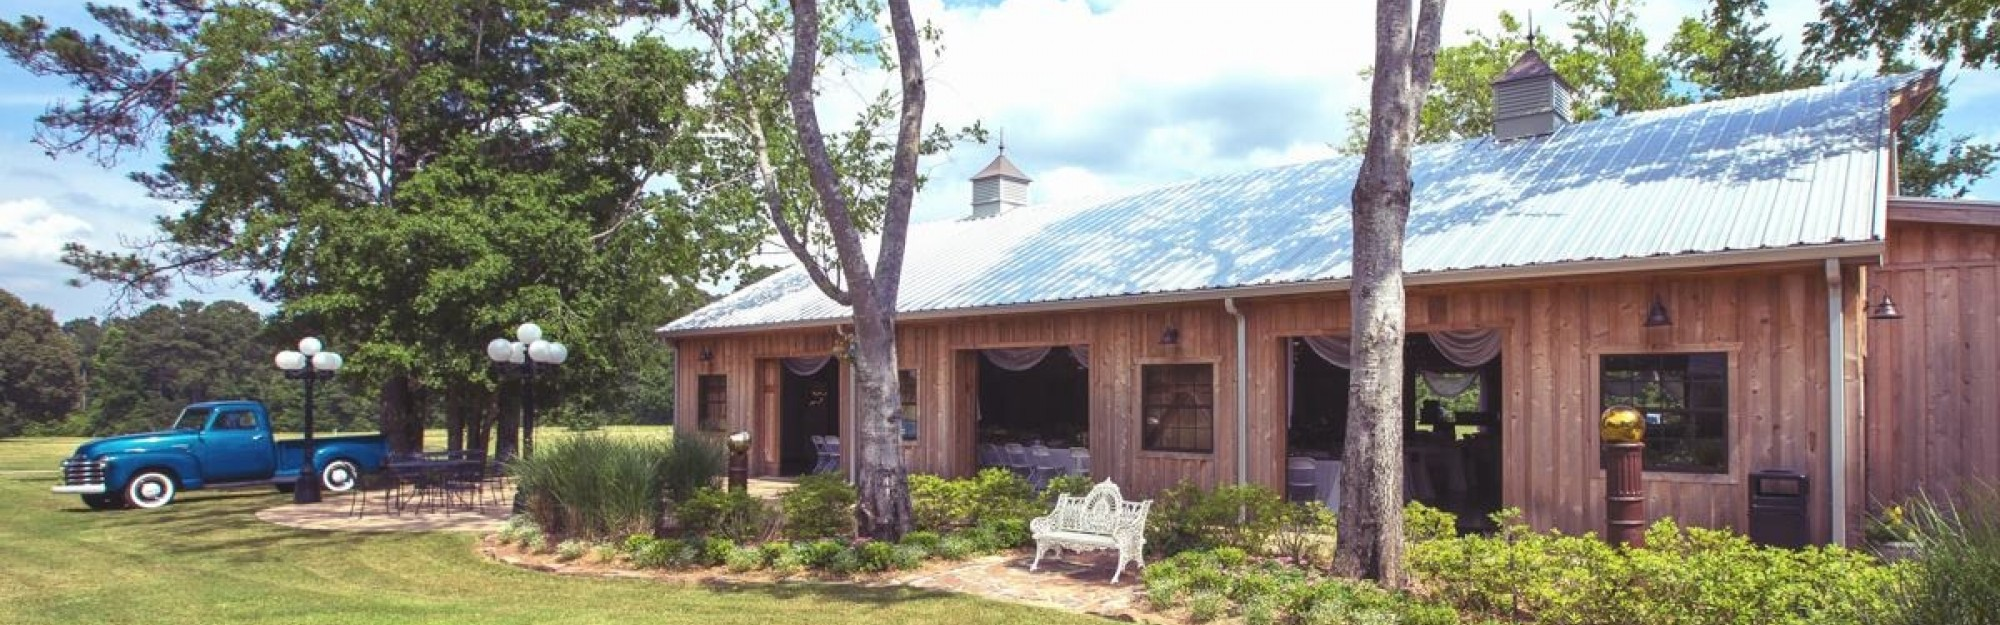 Barn Weddings and Reception, Venues East Texas, Longview ...